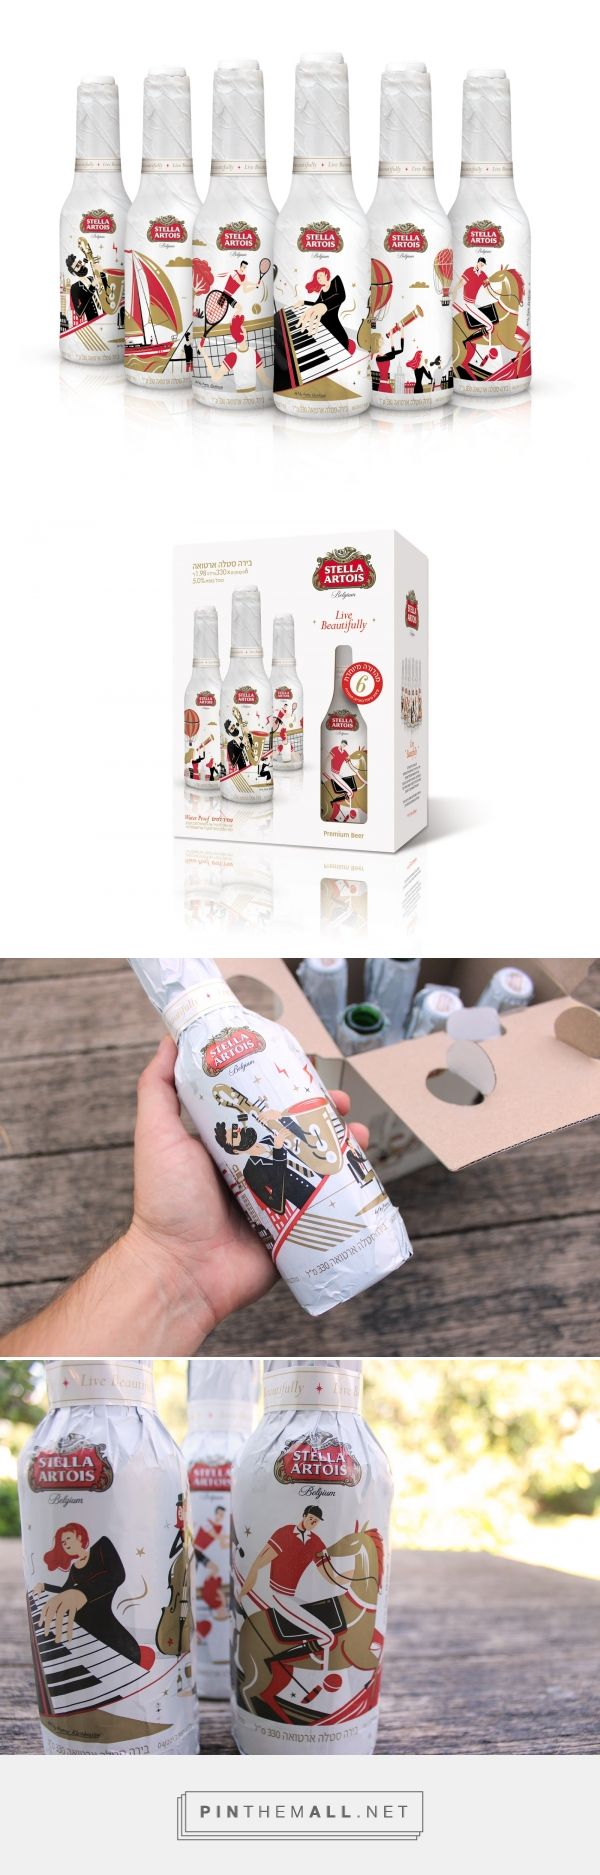 Stella Artois Special Edition packaging design GNS Advertising Agency: Yotam Sharon  Illustrator: Pierre Kleinhouse http://www.packagingoftheworld.com/2016/08/stella-artois-special-edition.html